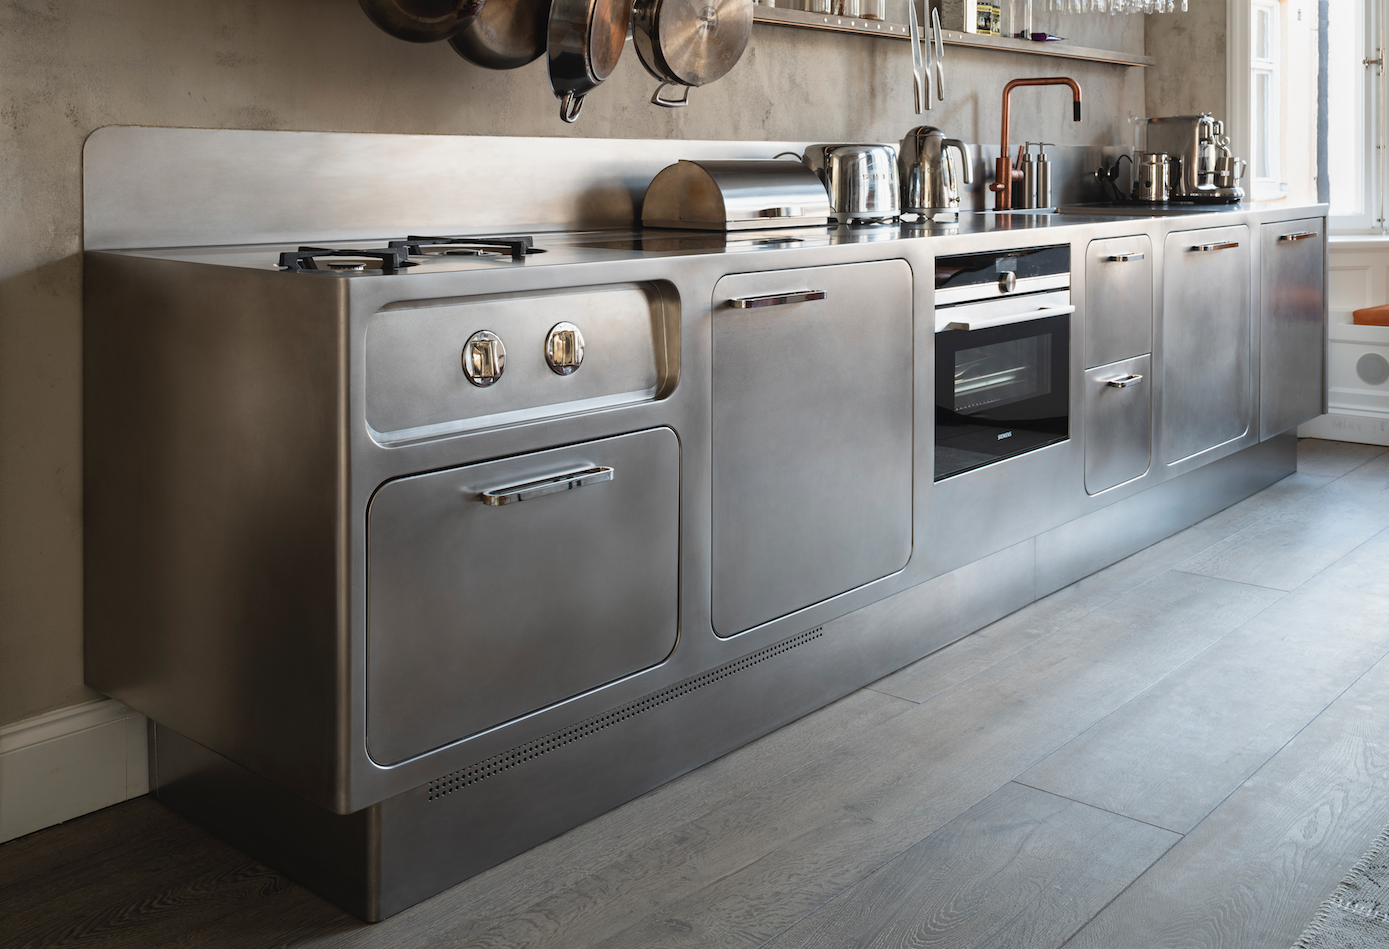 Abimis kitchens are made to last forever